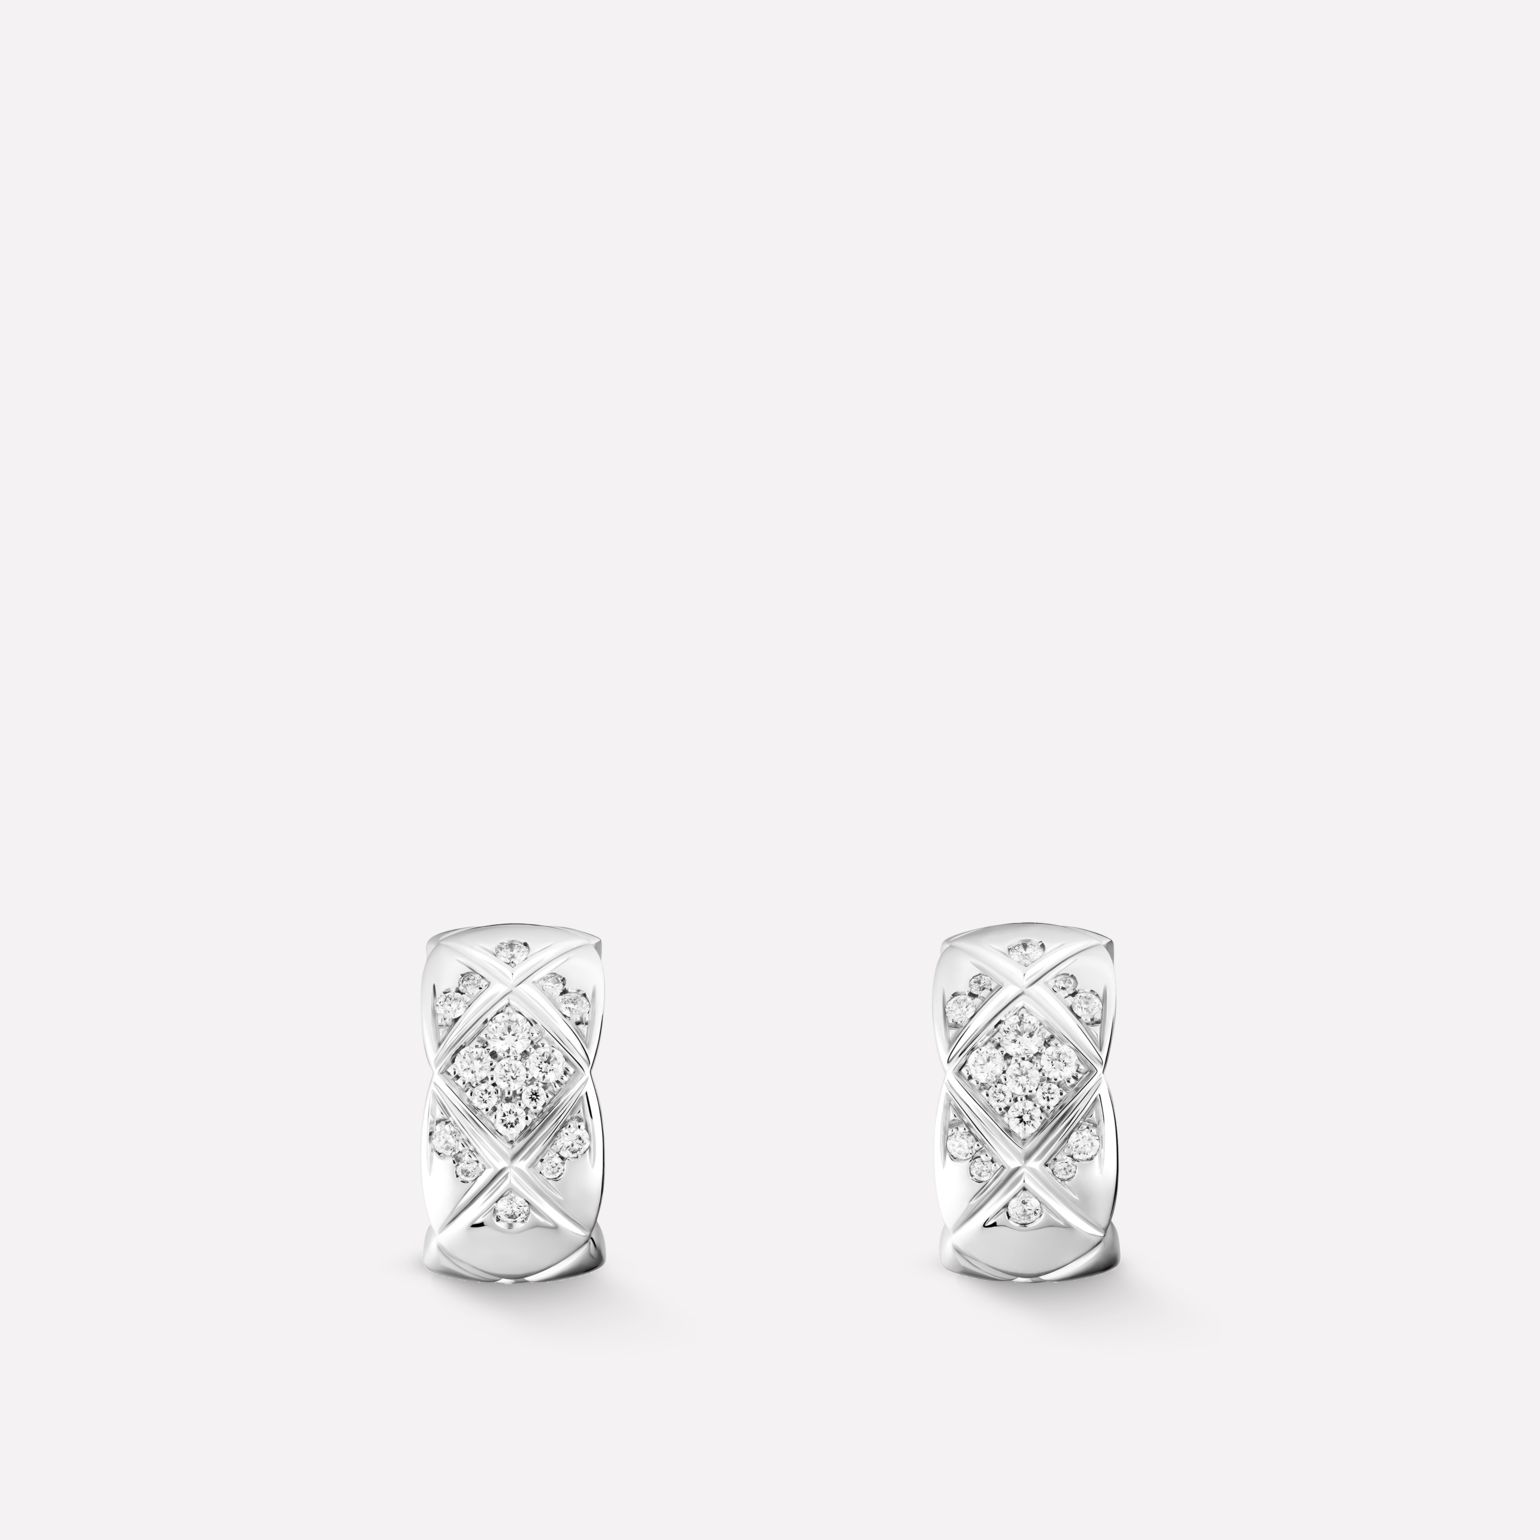 Coco Crush earrings Quilted motif earrings in 18K white gold and diamonds